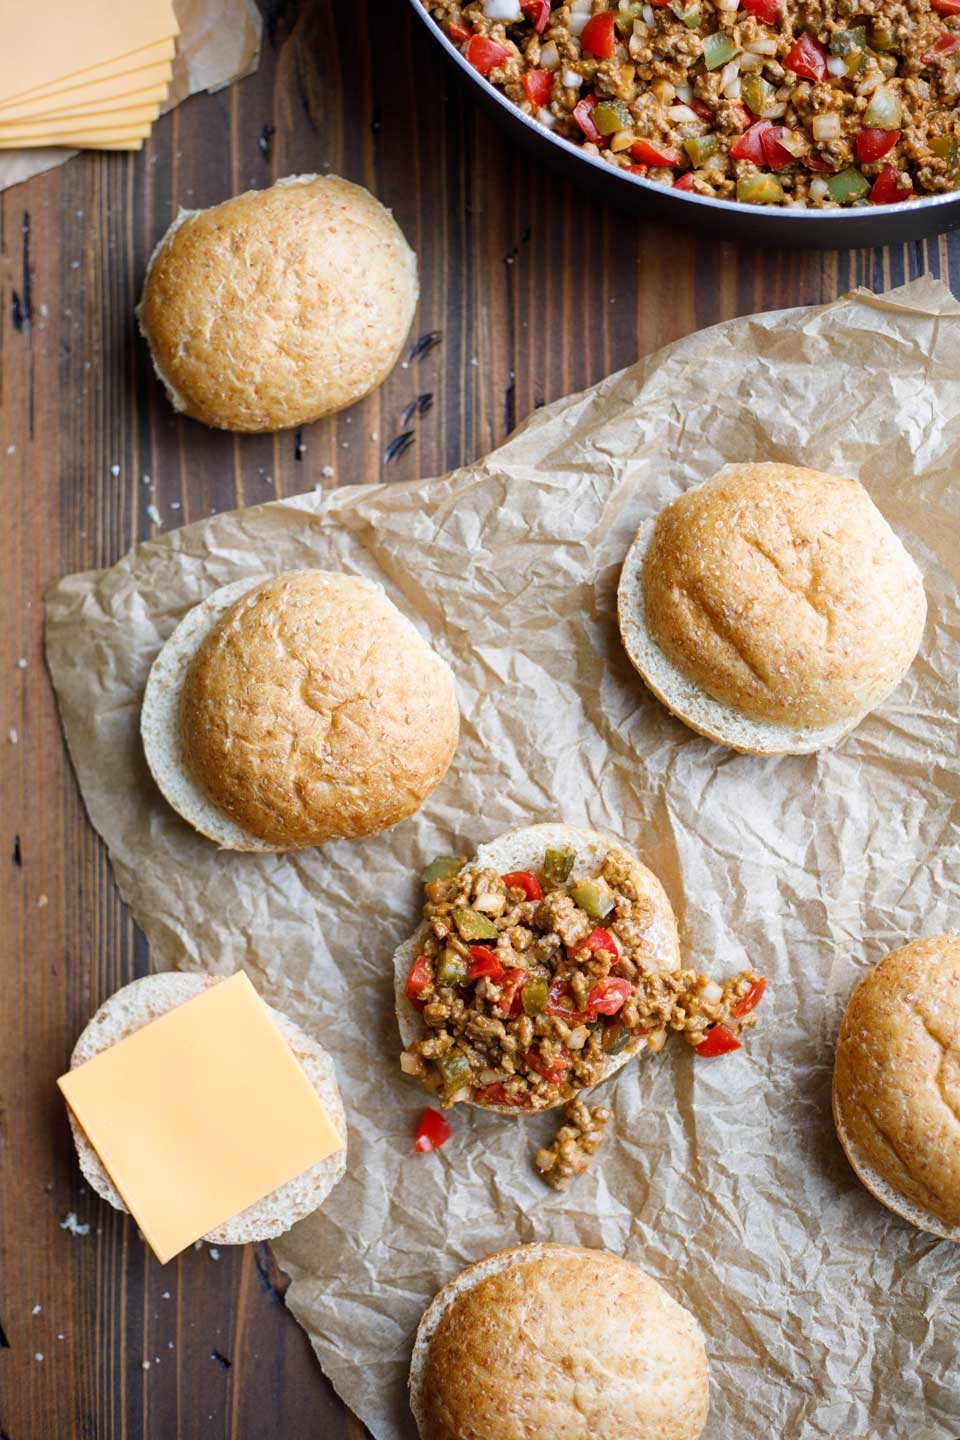 Just spoon that delicious sloppy cheeseburger goodness onto whole grain buns and top it with some cheese!